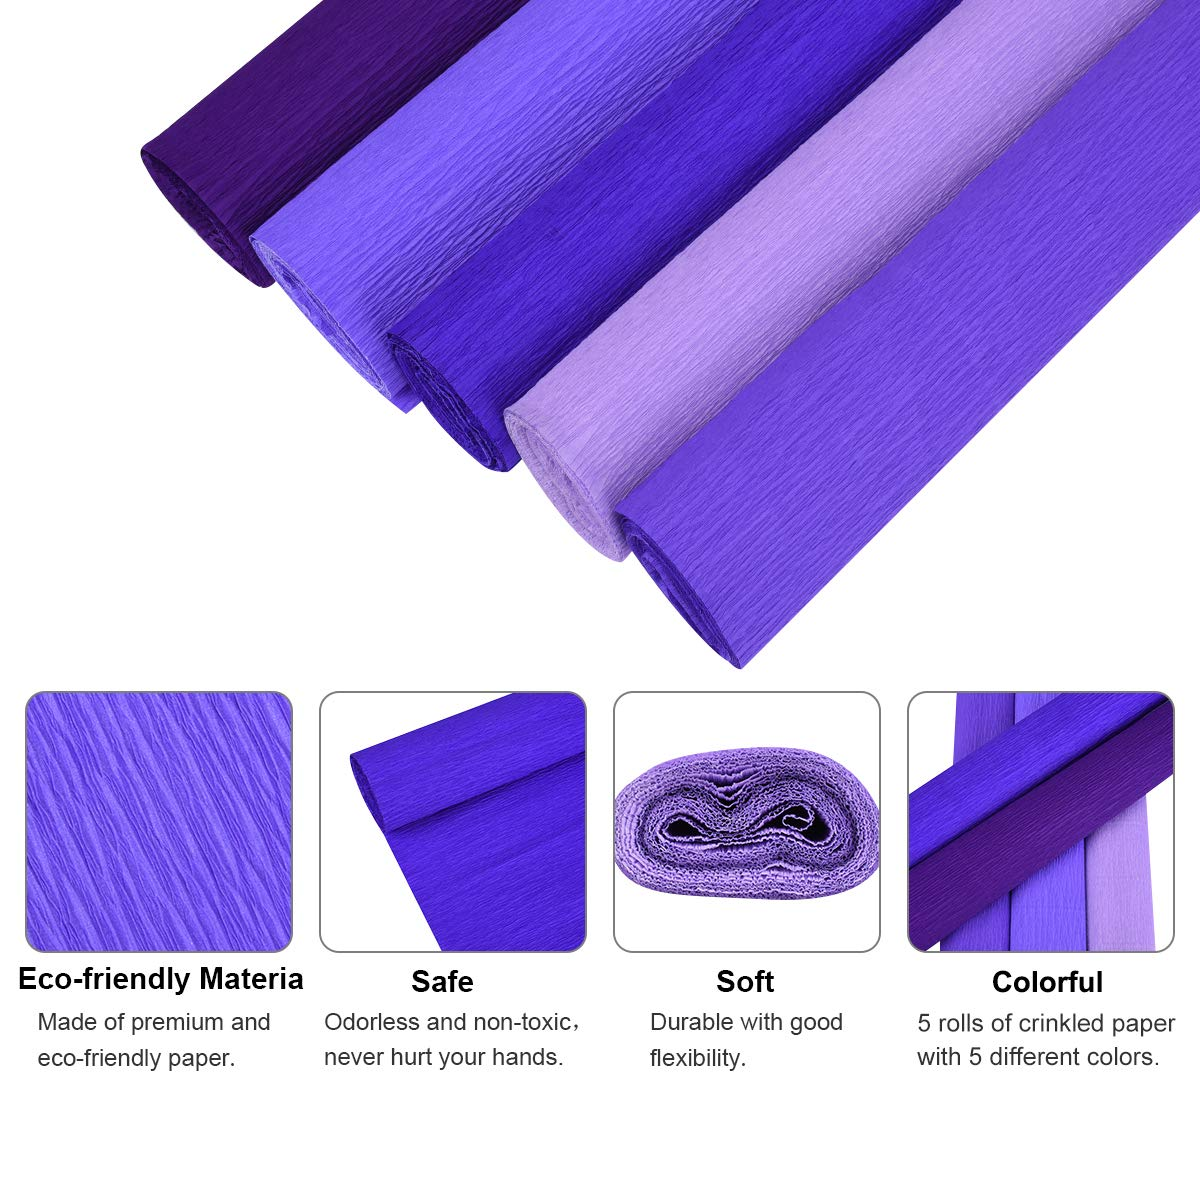 YoungRich 10 Pieces Crepe Paper Folds Rolls DIY Flower Packing Handmade Crinkled Paper 10 Assorted Color Eco-friendly for Wedding Birthday Party Decoration Multi-color 50x250cm